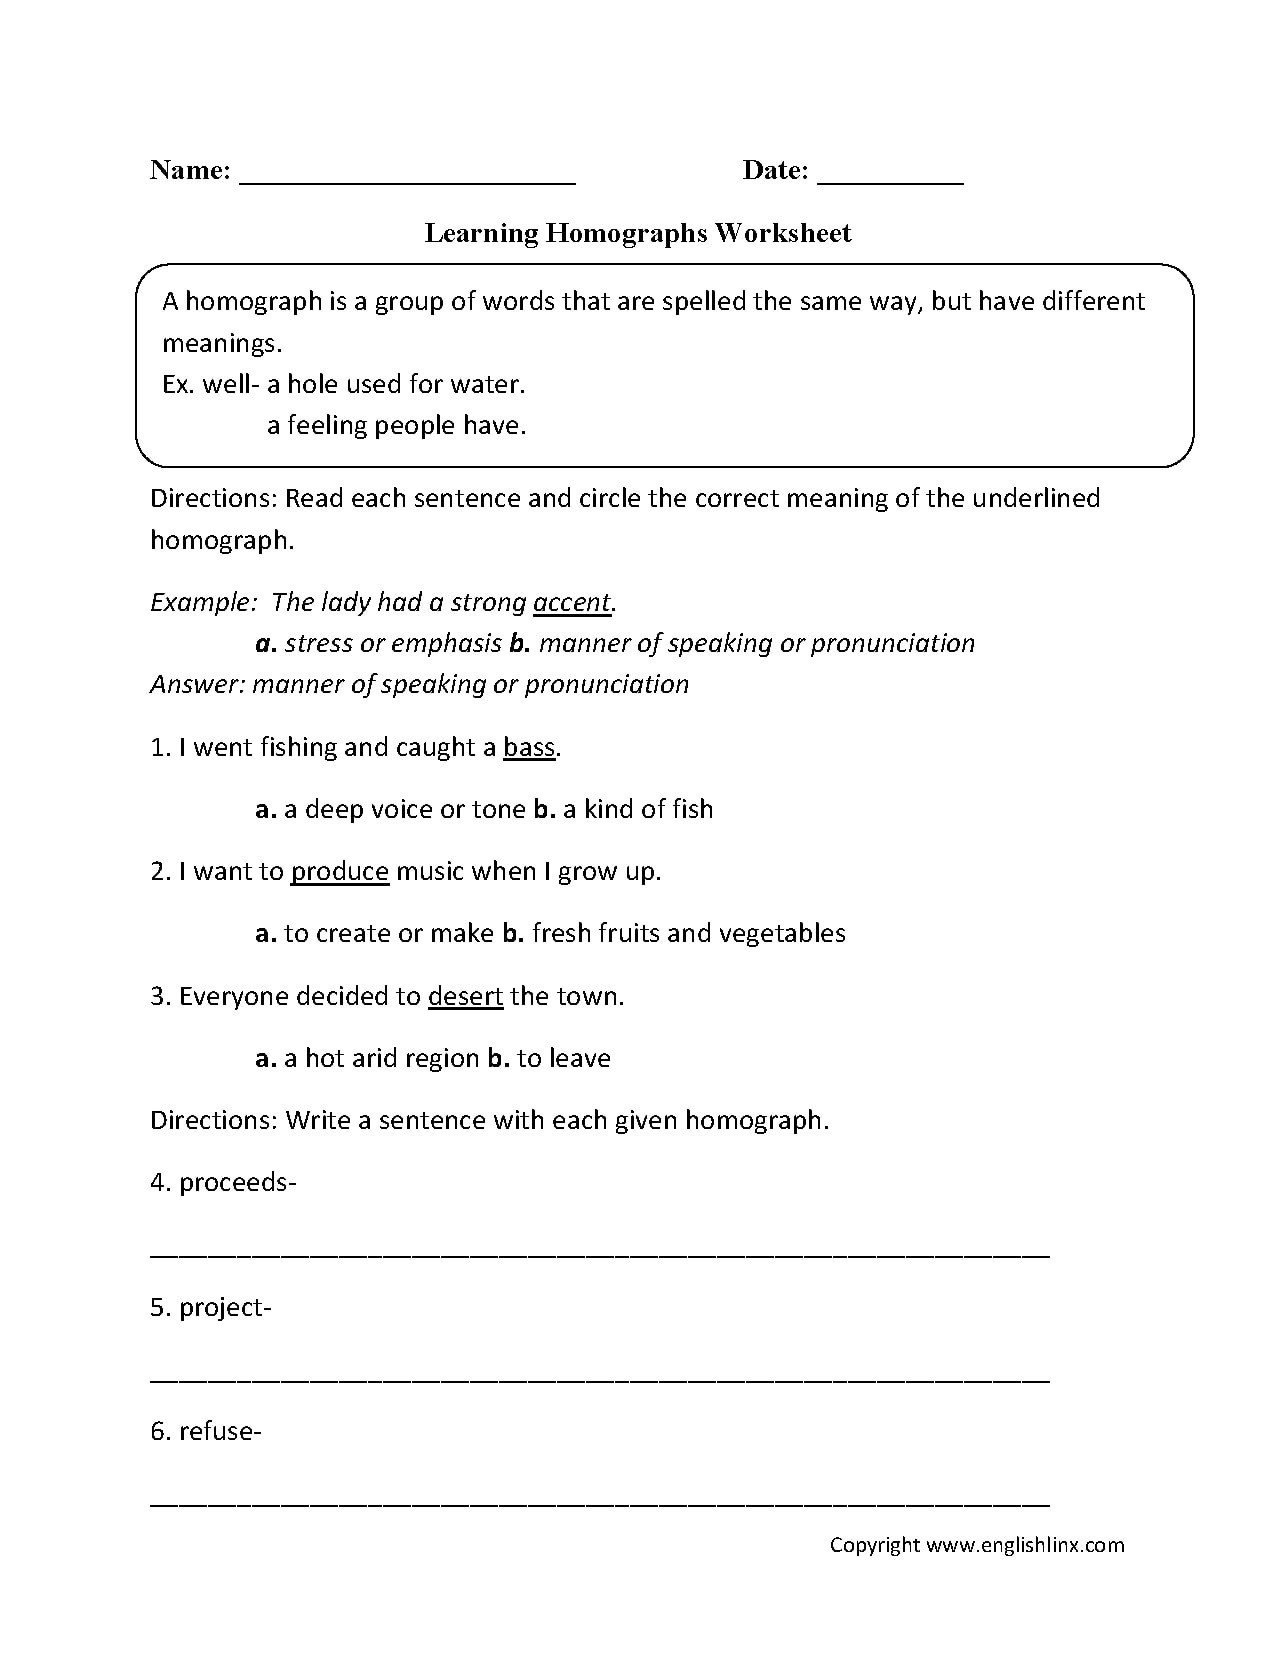 Homograph Worksheets 5th Grade Free Homograph Worksheet